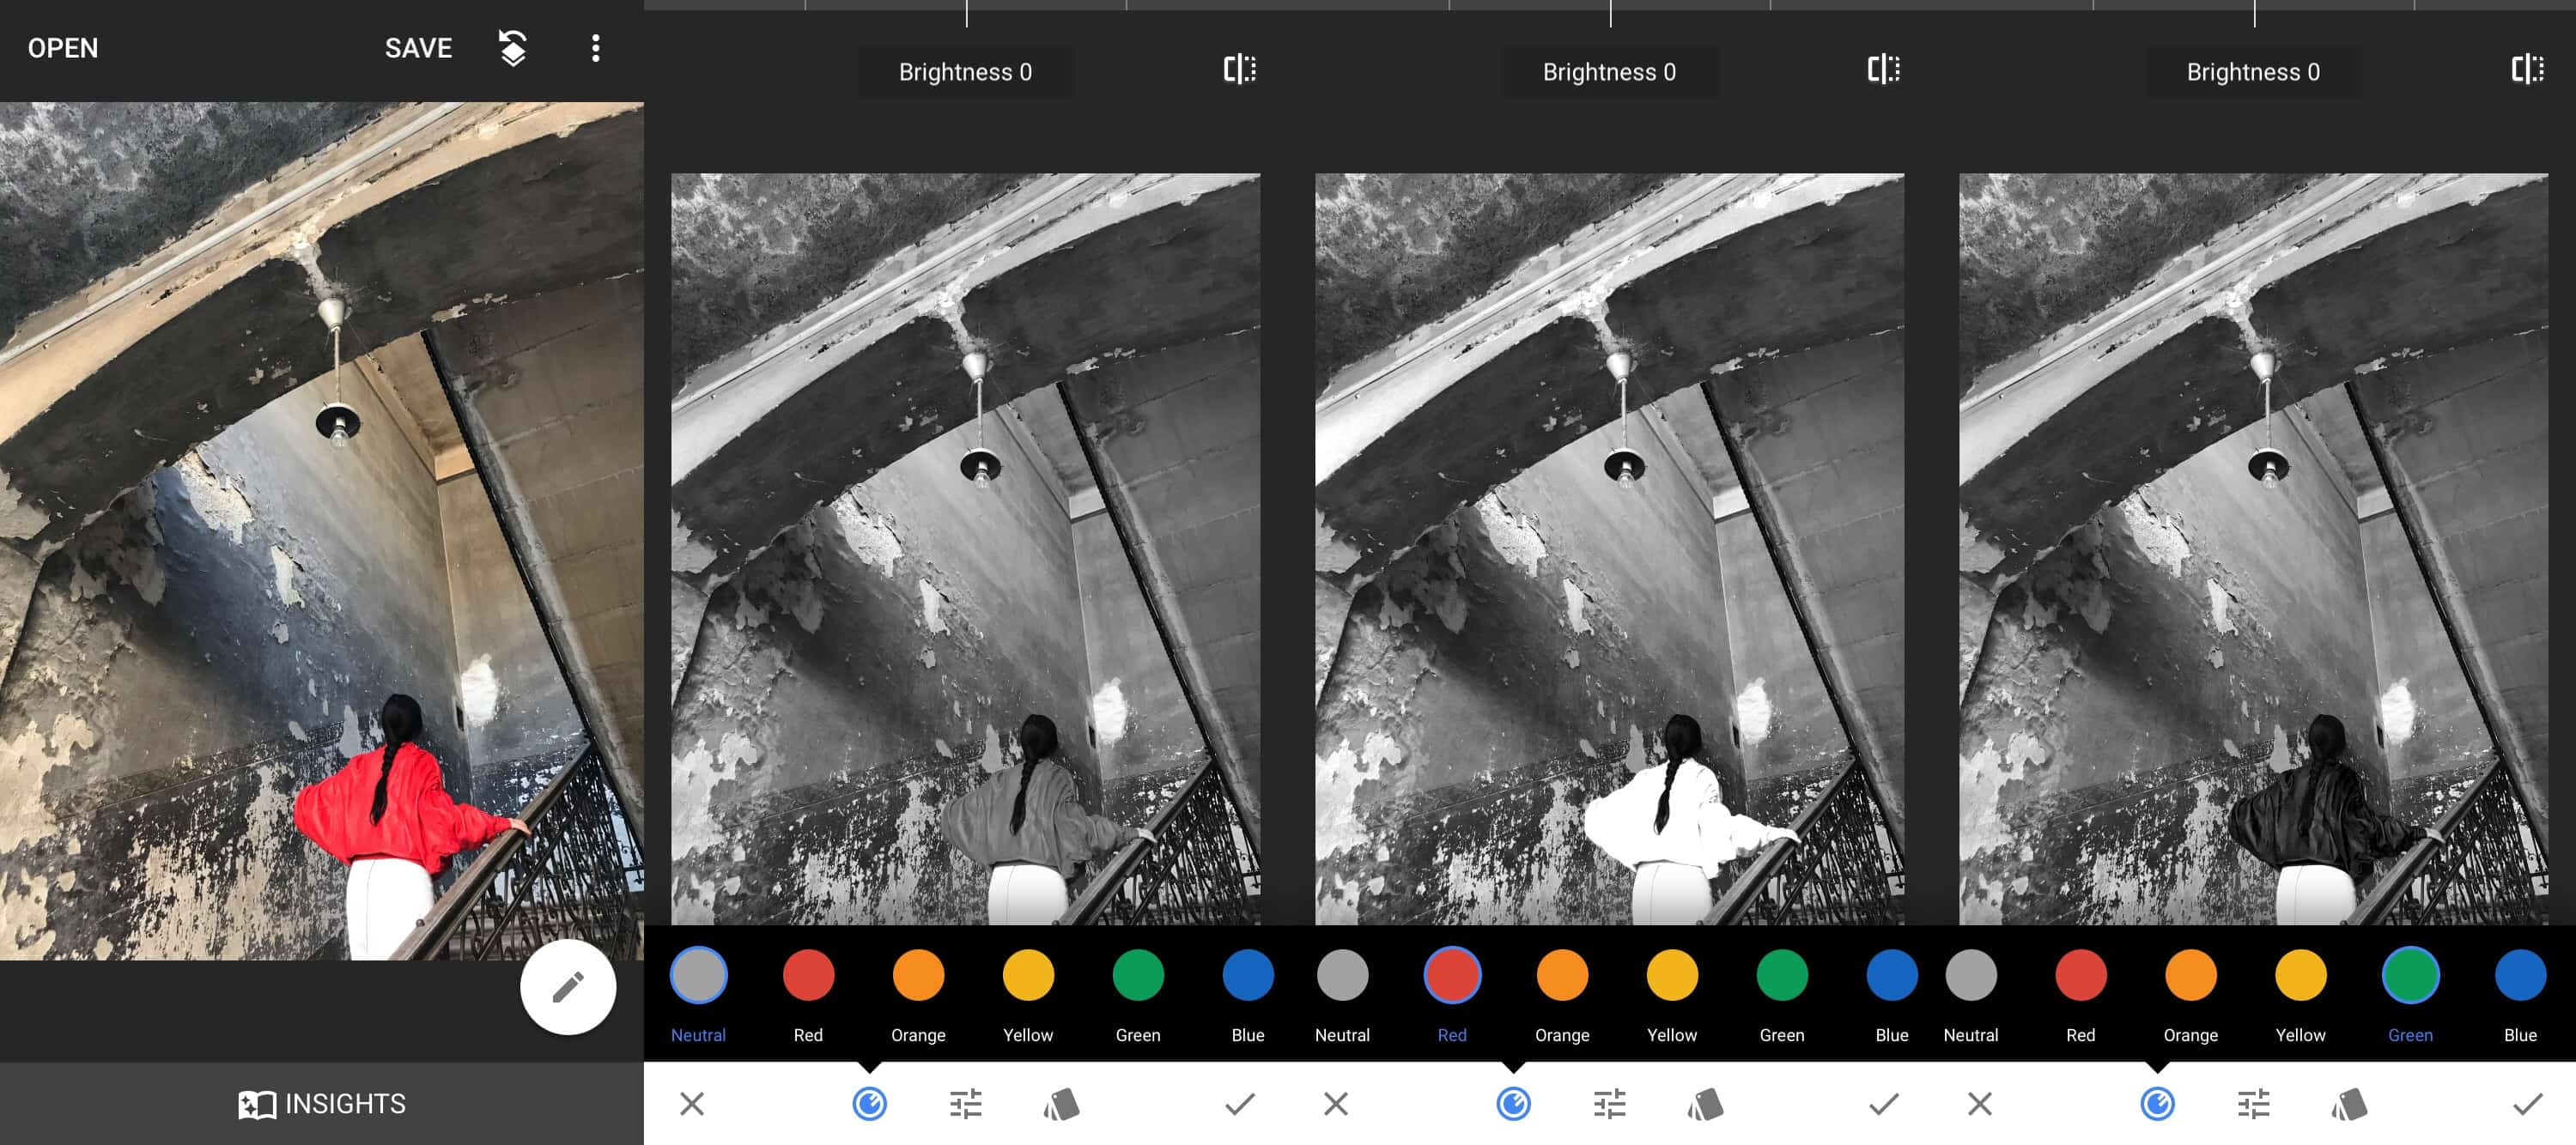 This shows how red and green filters can affect a B&W image.